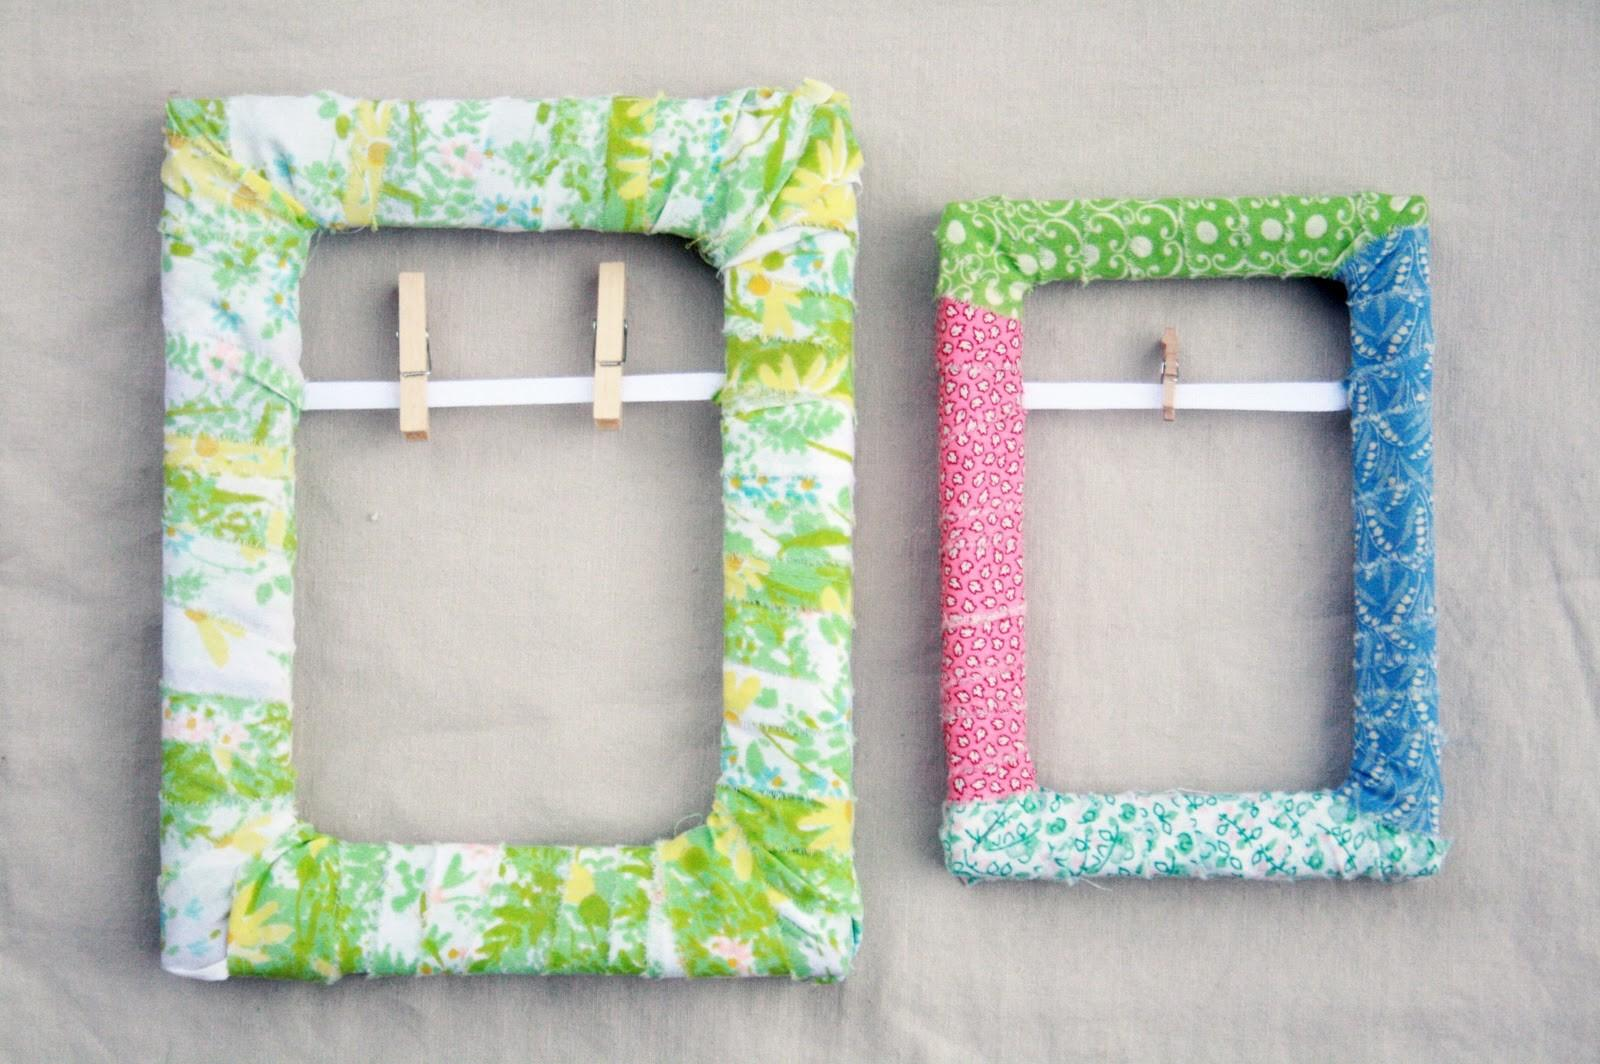 Easy Make Frames Diy